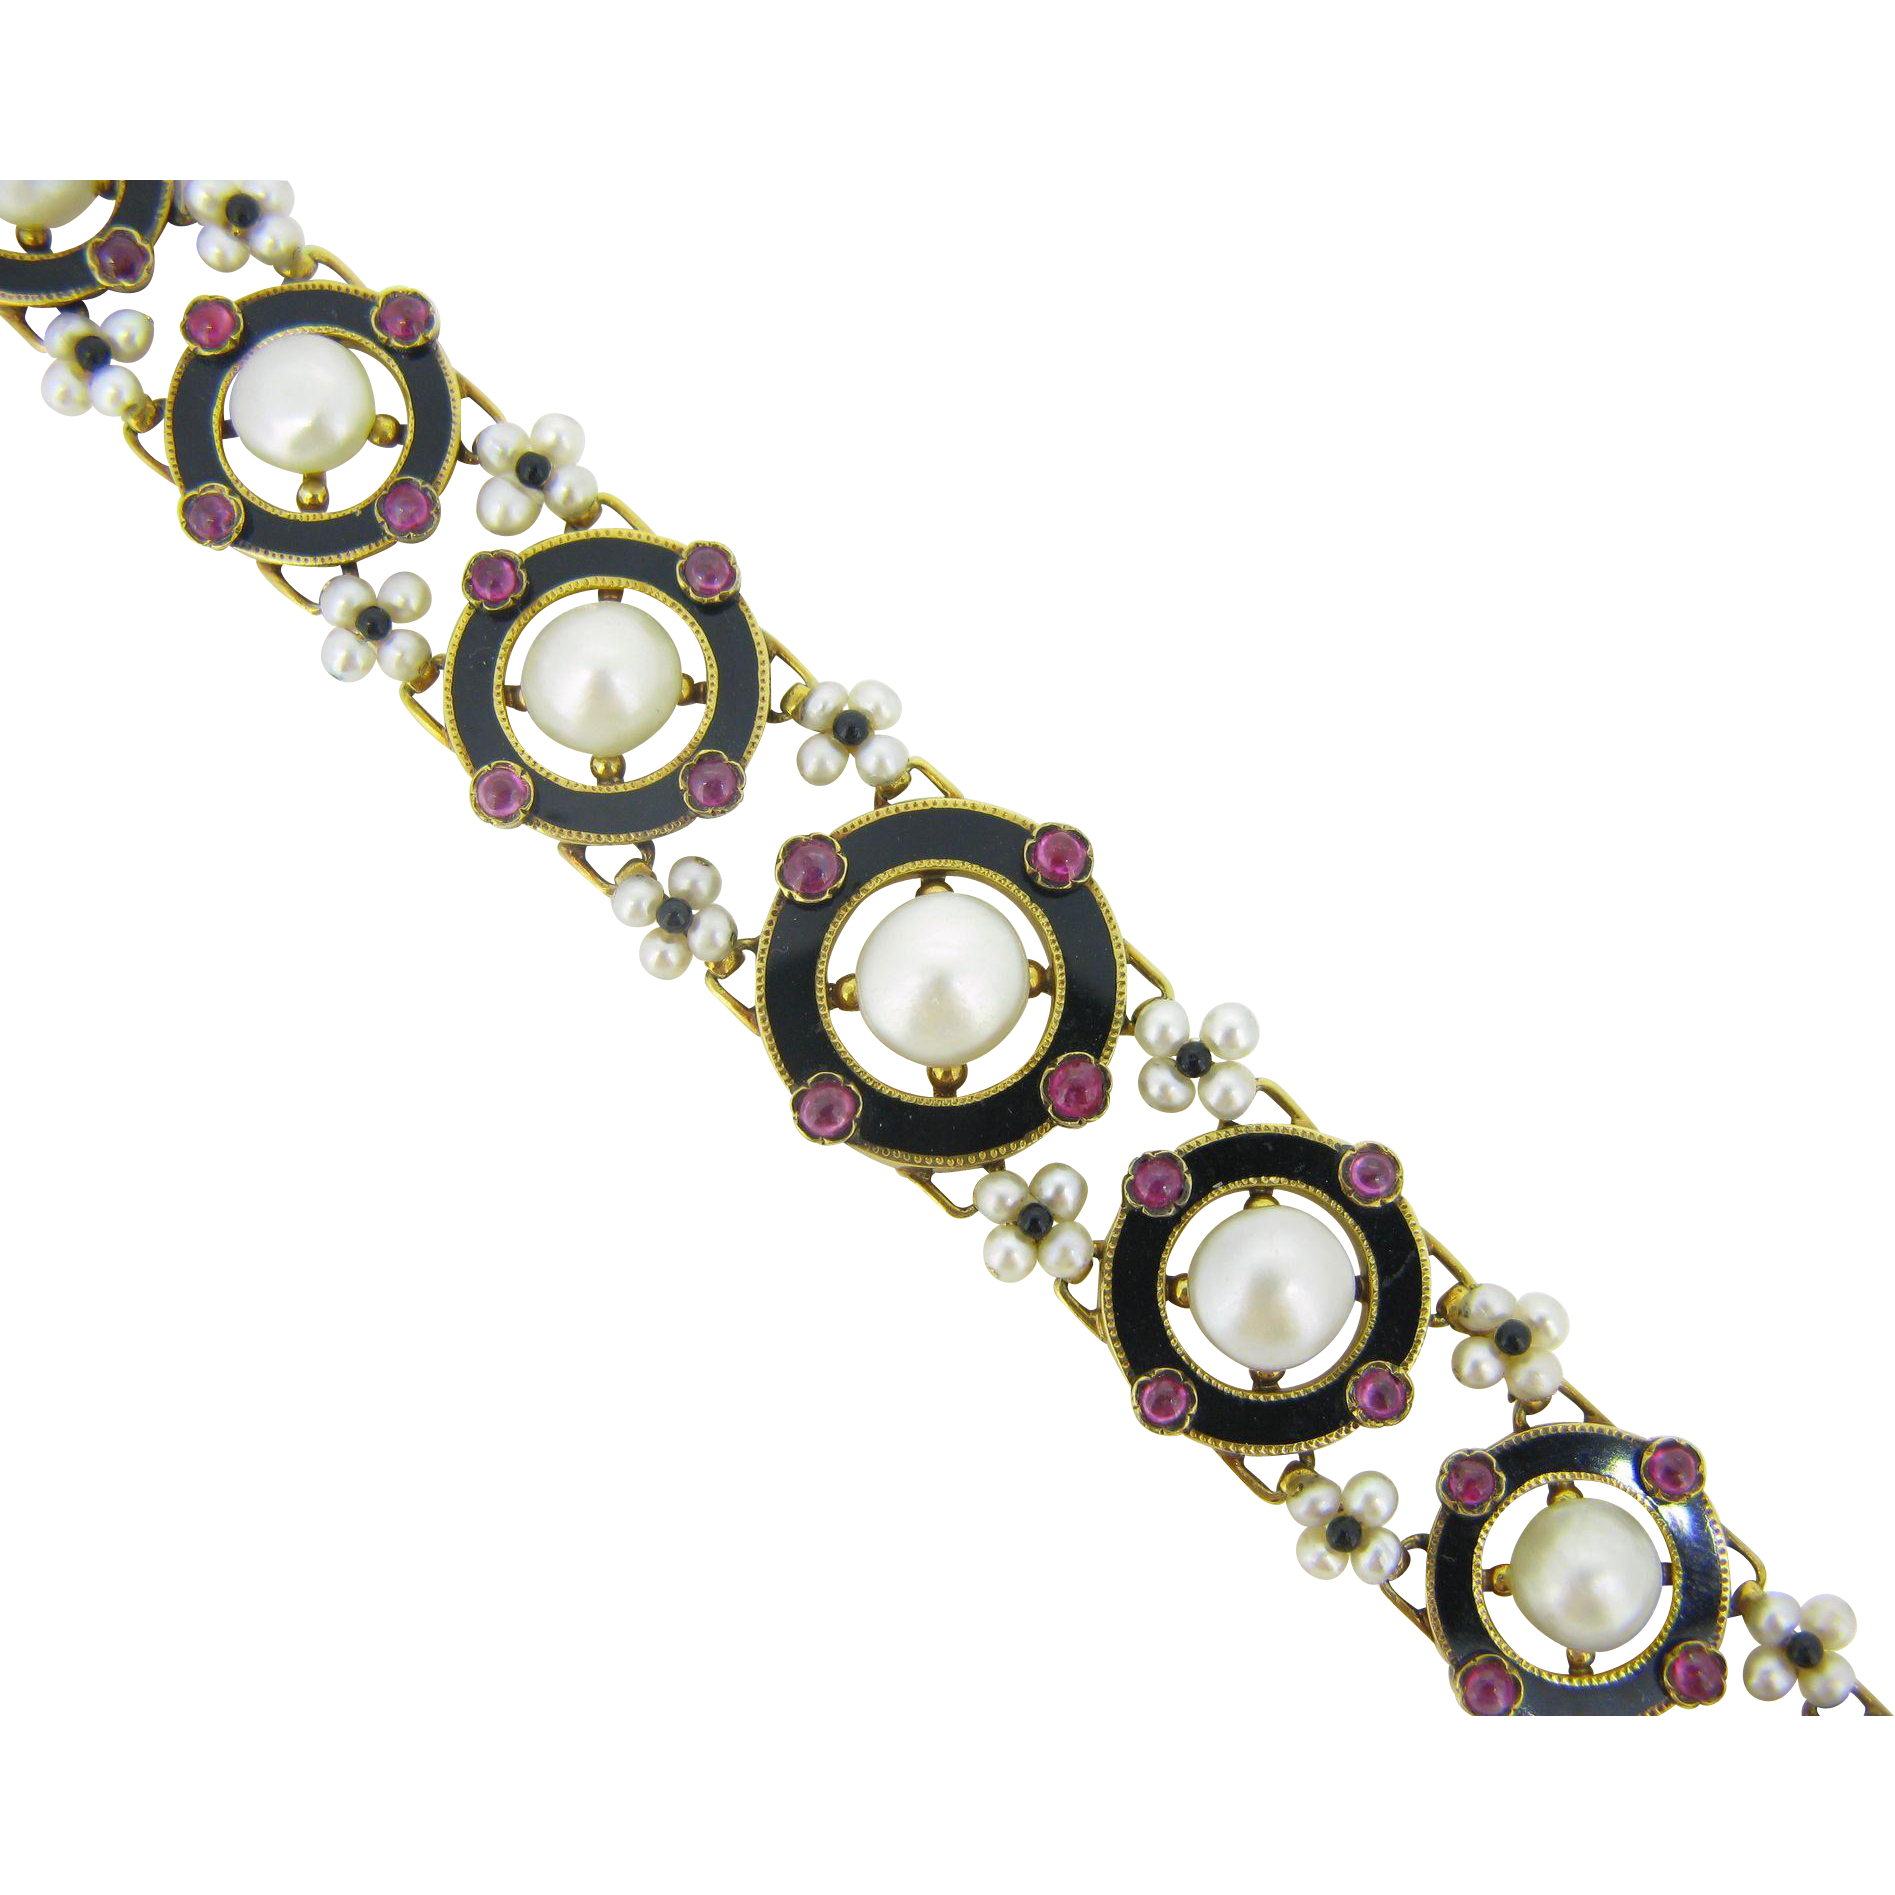 RARE Victorian Napoleon III Enamel, Naturals pearls and rubies bracelet, 18kt gold, c.1850